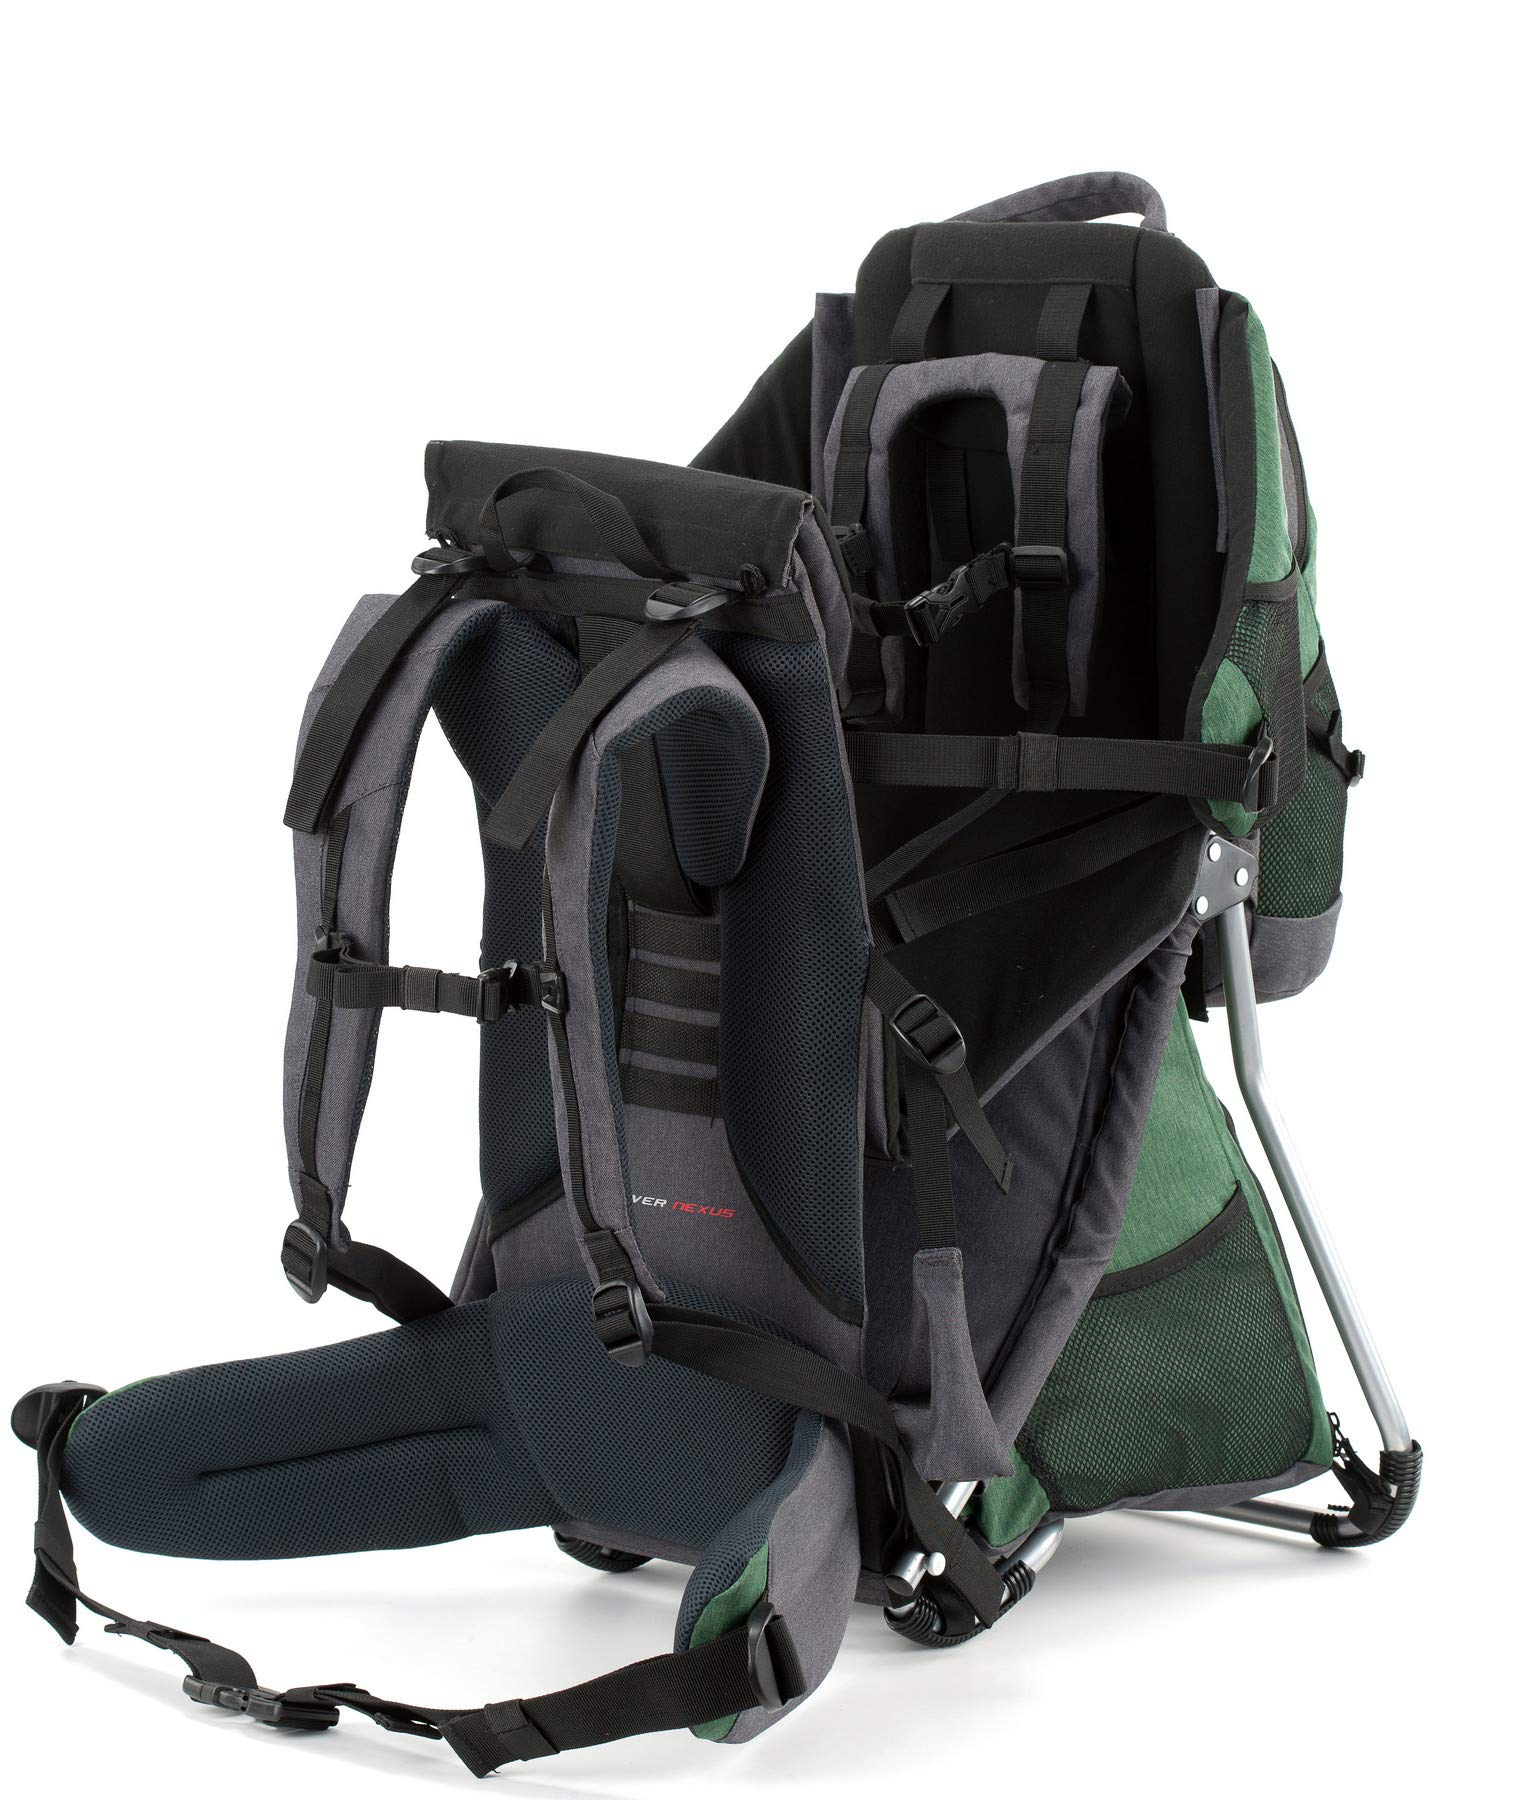 Montis HOOVER NEXUS, Child Hiking Backpack Carrier, suitable for babies & toddlers with a stable seat, low weight suitable, many extras, premium quality (GREEN) M MONTIS OUTDOOR ✅ SAFE - Practical baby carrier backpack completely adjustable with wide 5-point child harness for children weighing up to 25 kg instead of 20 kg. Thanks to height-adjustable seat cushions, padded side panels, a rear headrest, and forehead cushions, it is ideal for hiking in the city or in the country. With reflective elements on the front and back for night protection. ✅ COMFORTABLE - Suitable for both parents thanks to adjustable shoulder straps, a 14 cm adjustable chest strap with a vertical position for women's ergonomics, and reinforced back area (incl. ventilation system) with load distribution to the pelvic belts. We use materials of the highest quality and focus on flawless manufacturing. ✅ SPACIOUS - Removable additional backpack 10L and seat pocket with 18L volume provide the carrier with additional storage space for water bottles, rain protection, sun protection, changing mat and much more. In addition, the straps of the baby carrier are equipped with small quick-access pockets to avoid the need of constantly taking off the carrier. 6